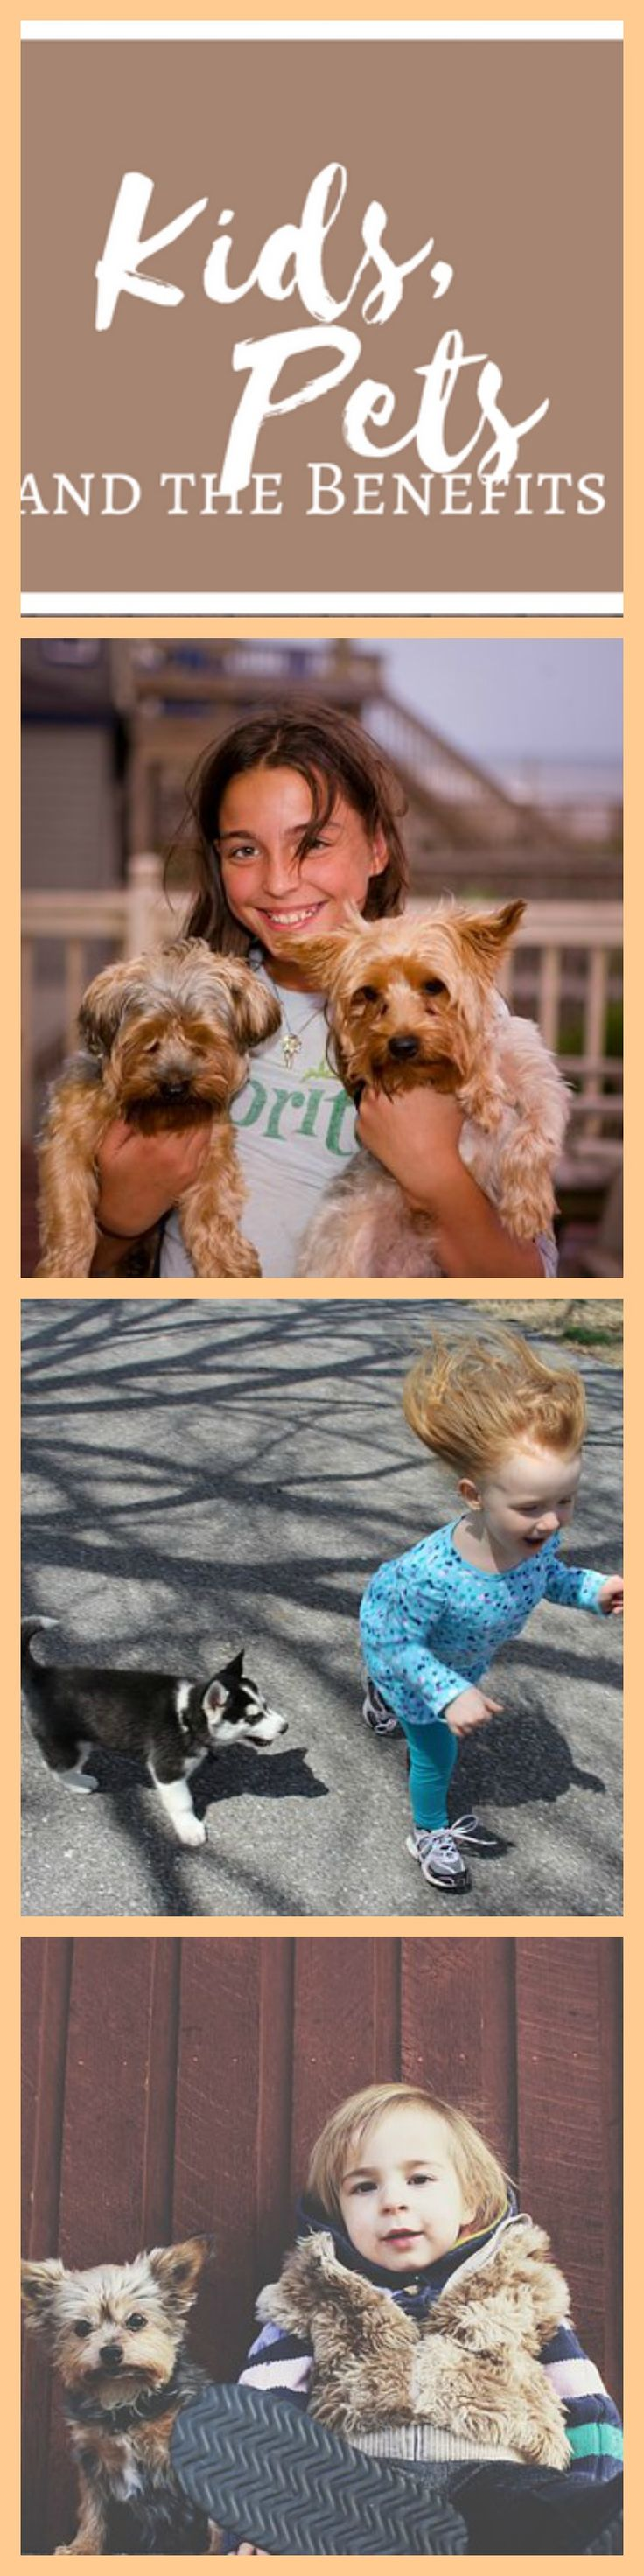 April 26th is National Kids and Pets Day.  It's a special day in which we recognize the benefits between the relationship of children and their pets.  If you ever grew up with a pet then you know how special that bond can be.  Dogs provide unconditional love and will never let a child down.  They will truly be a child's forever friend.